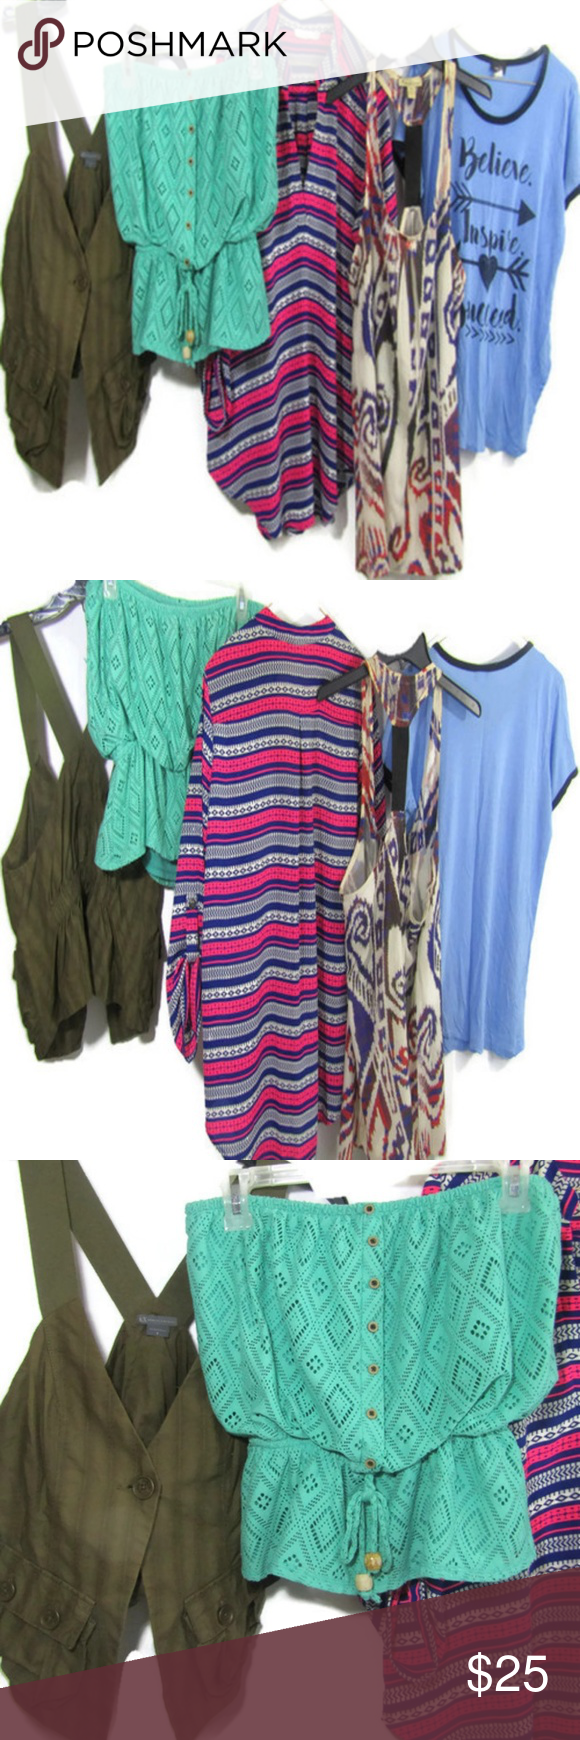 cad0d03b3e Armani Exchange Rue21 Women s Tops Blouses Bundle This bundle consists of 1  tribal print tank